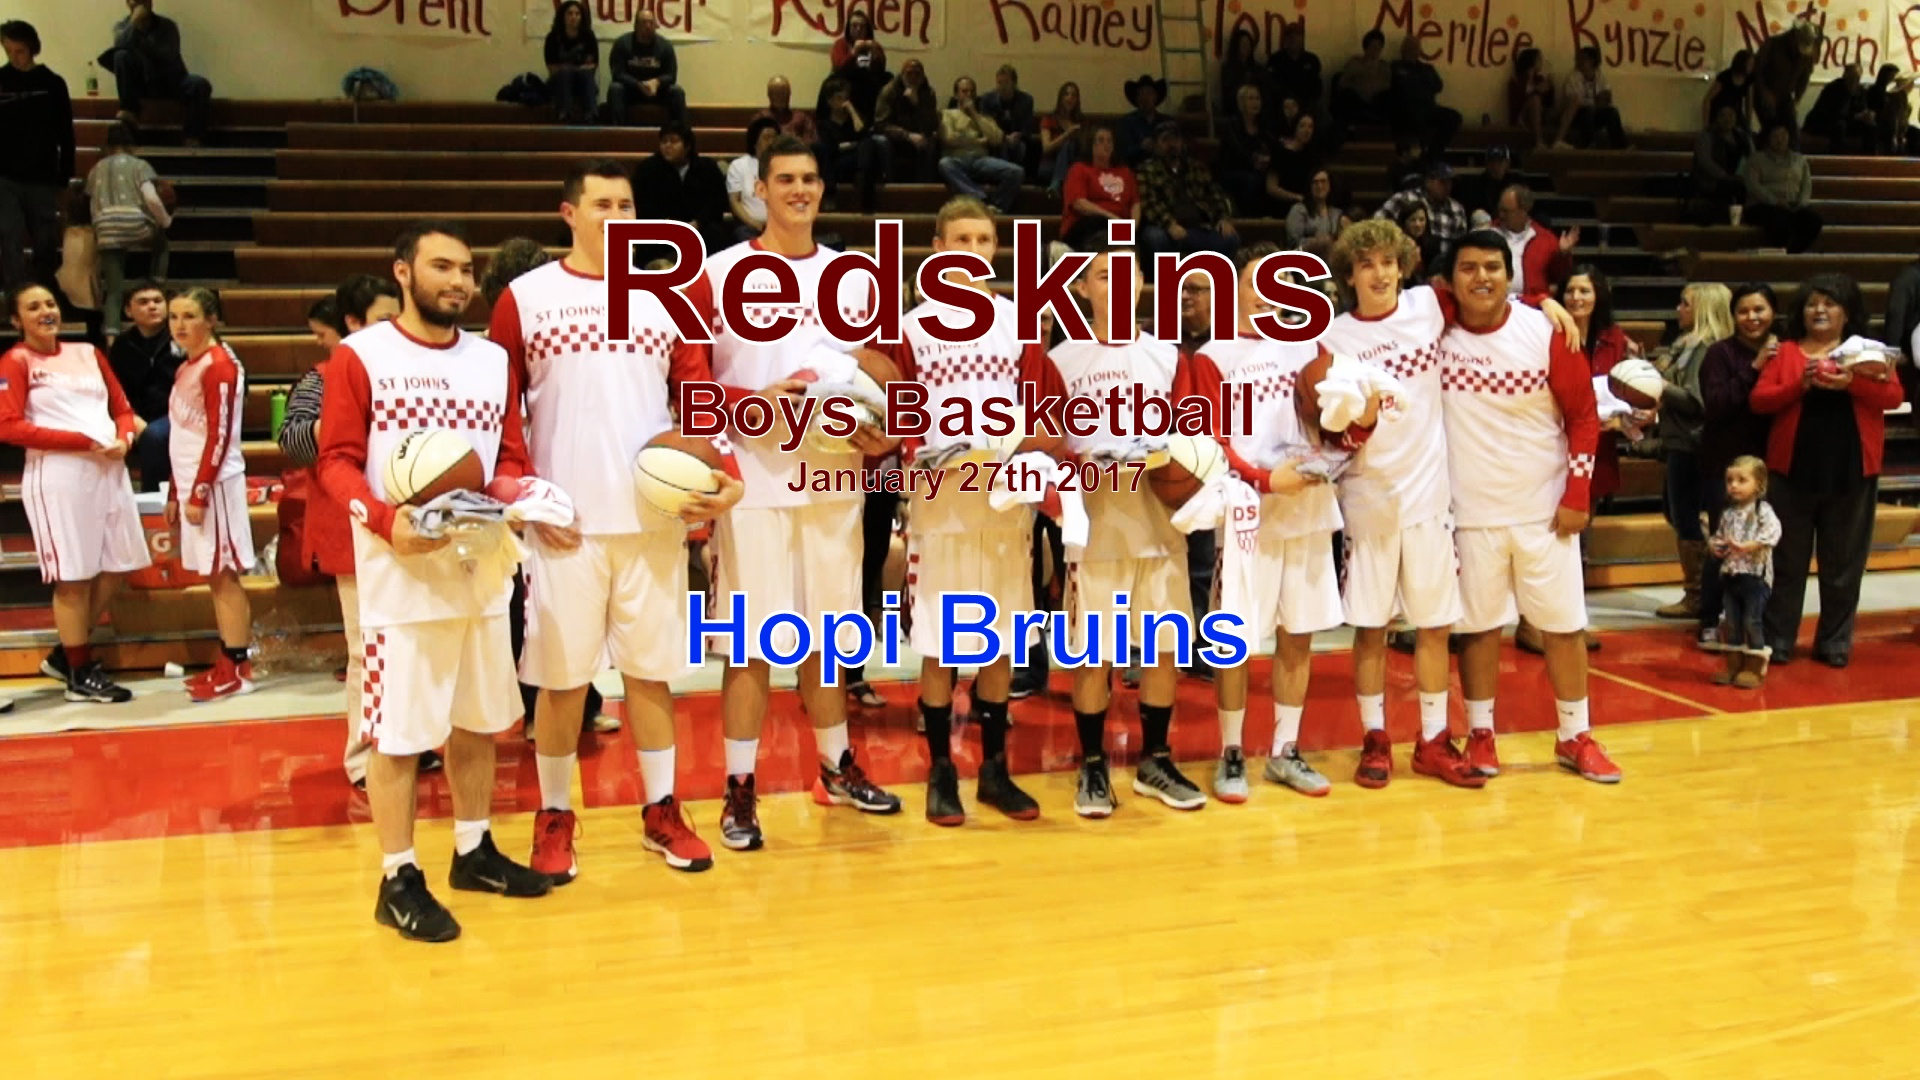 2017 Boys Basketball - Hopi